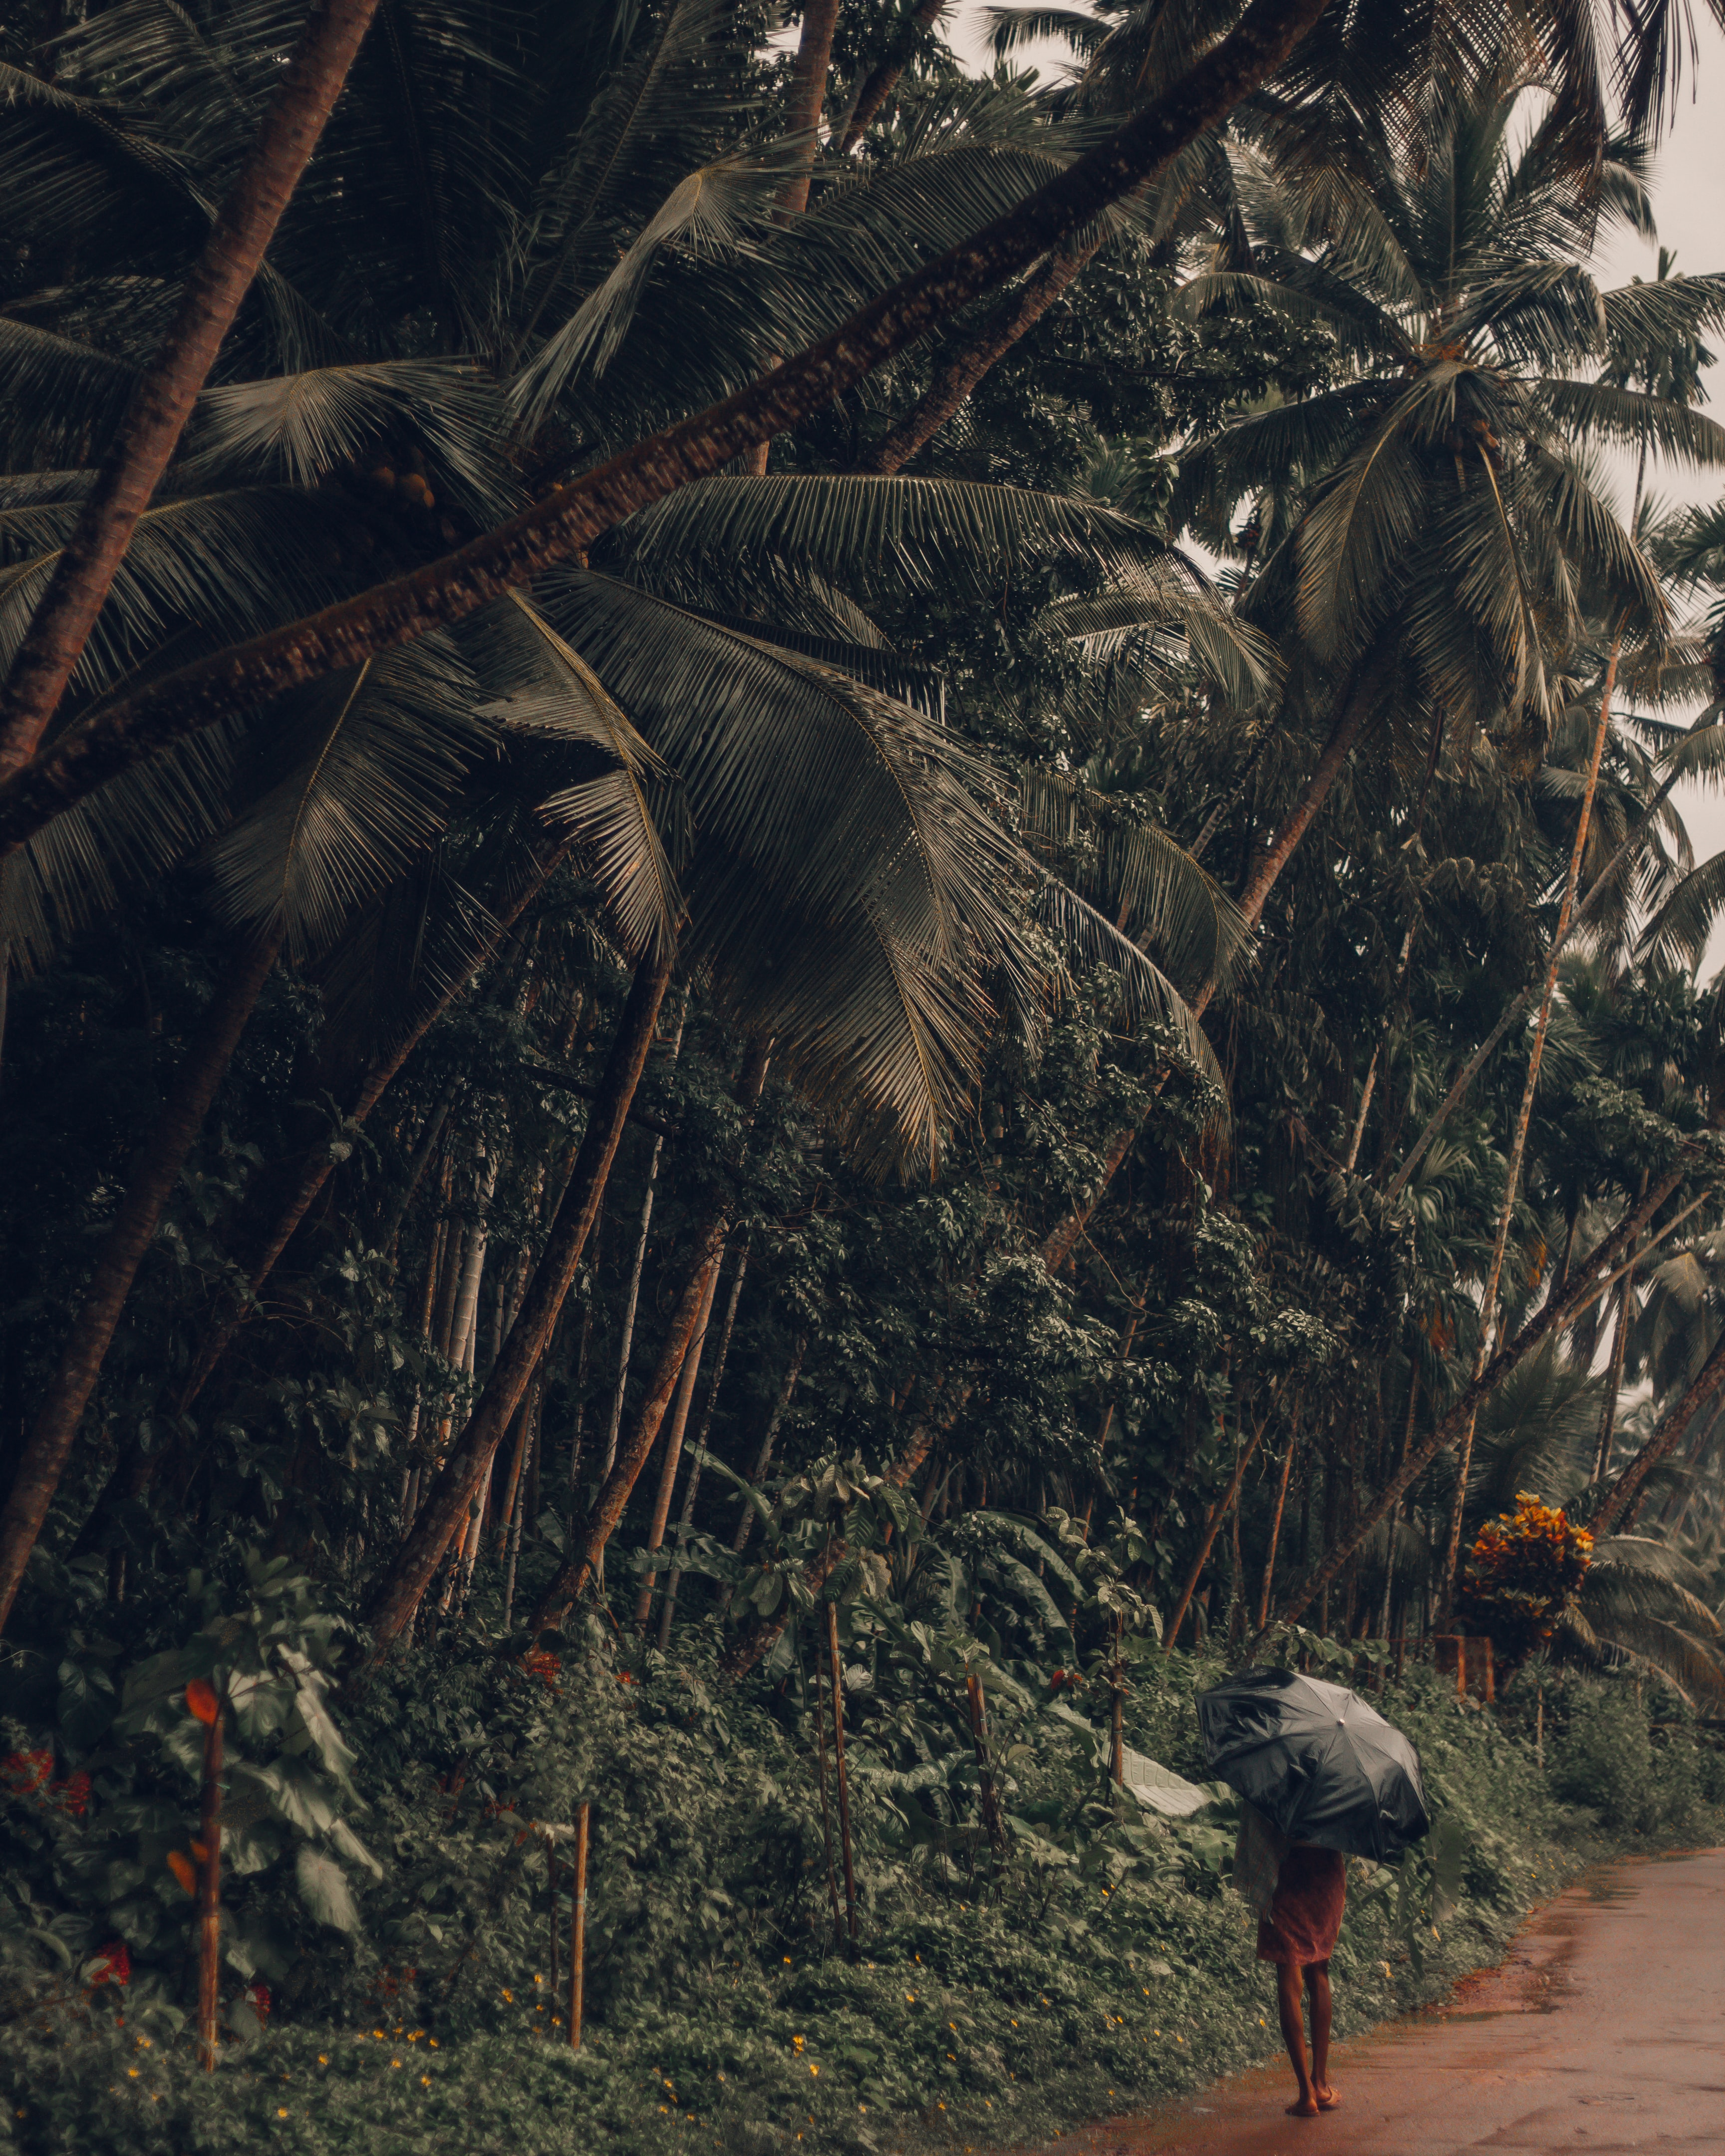 person walking beside coconut trees during rainy day